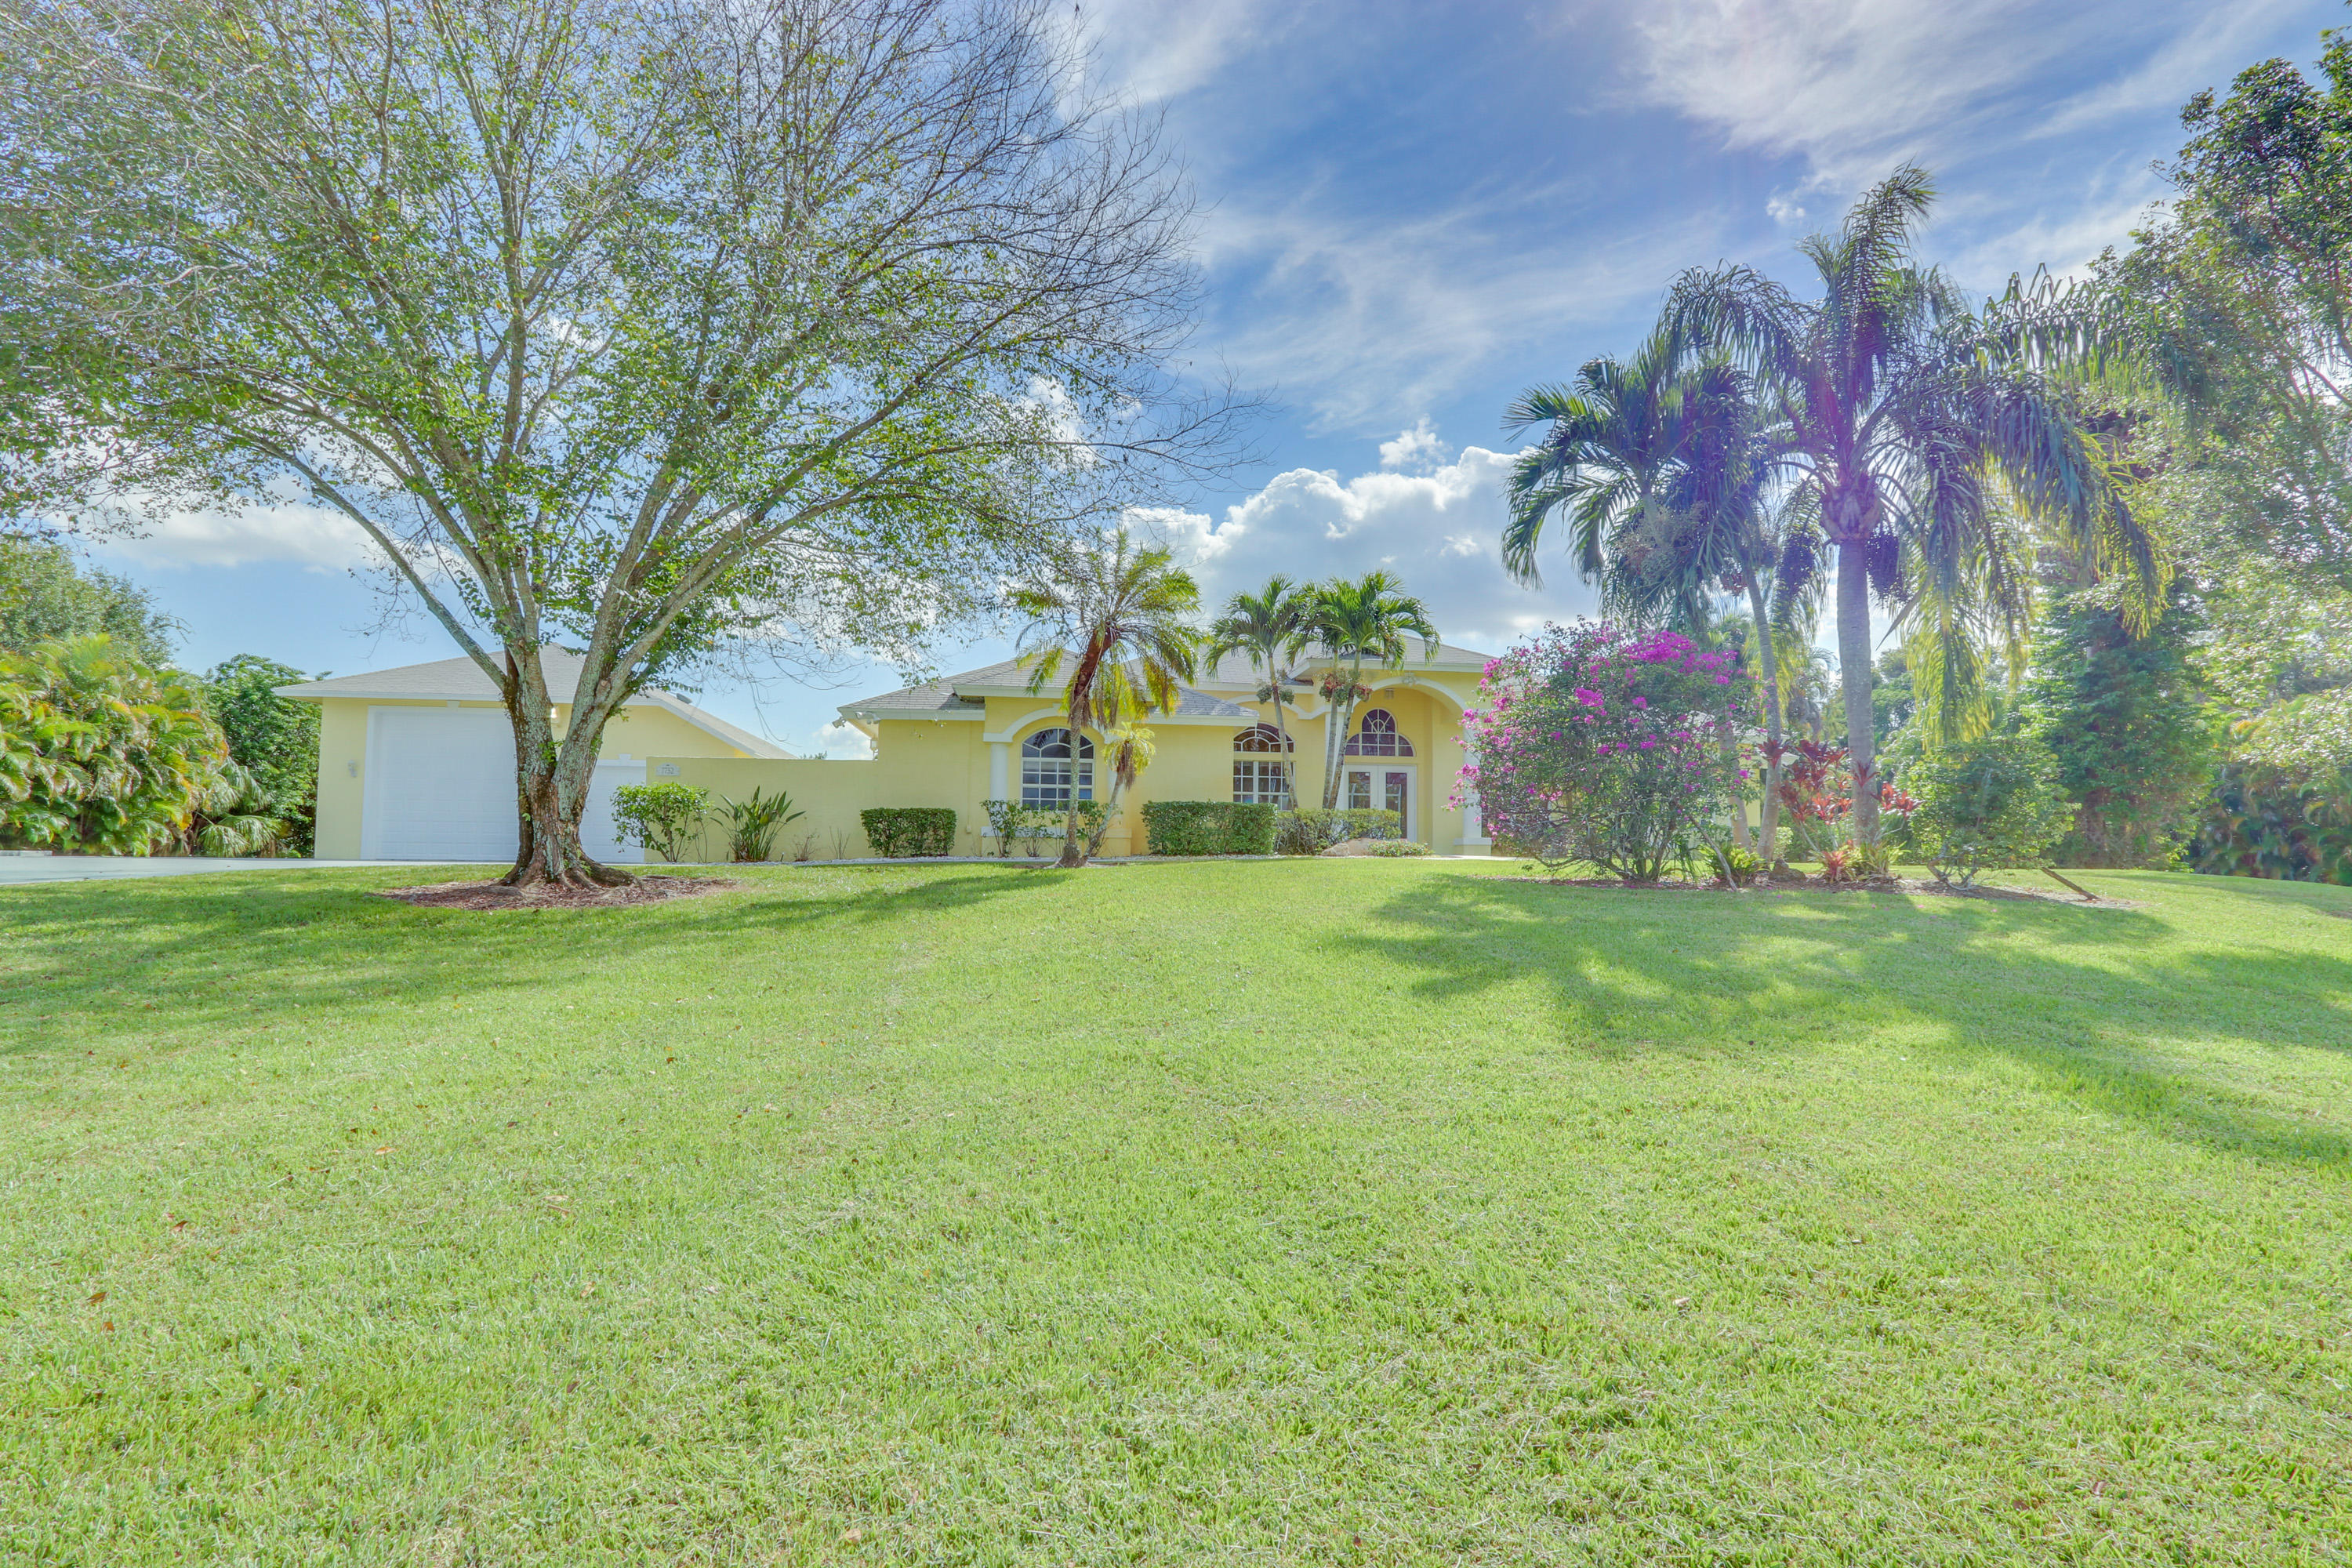 PALM BEACH COUNTRY ESTATES PALM BEACH GARDENS REAL ESTATE